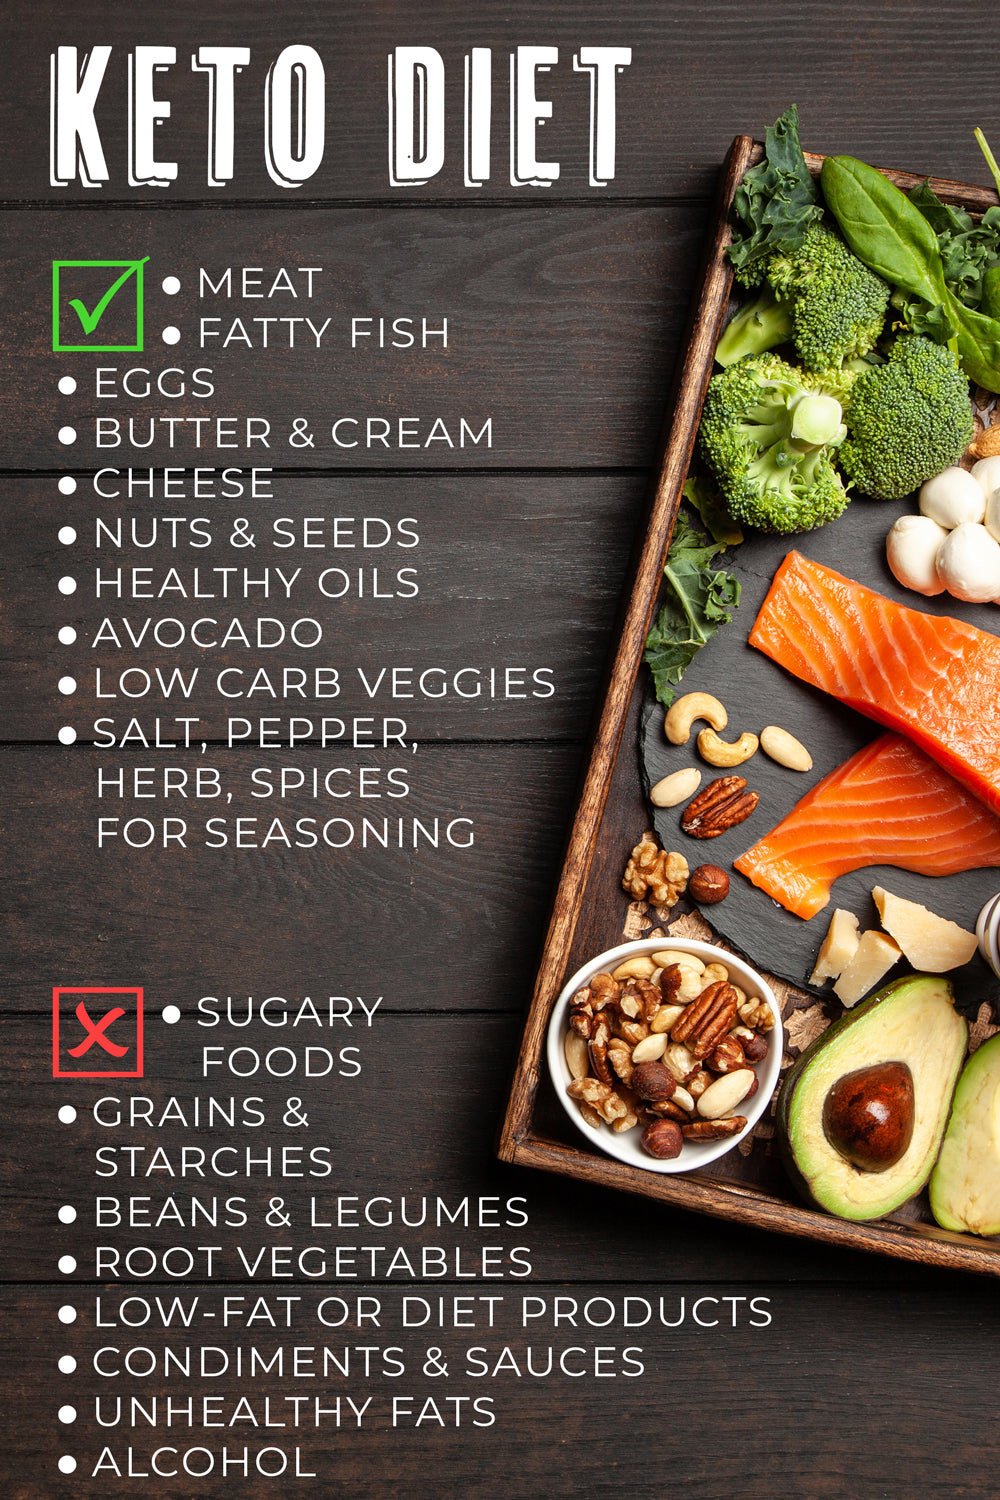 Keto diet list of what to eat and what to avoid